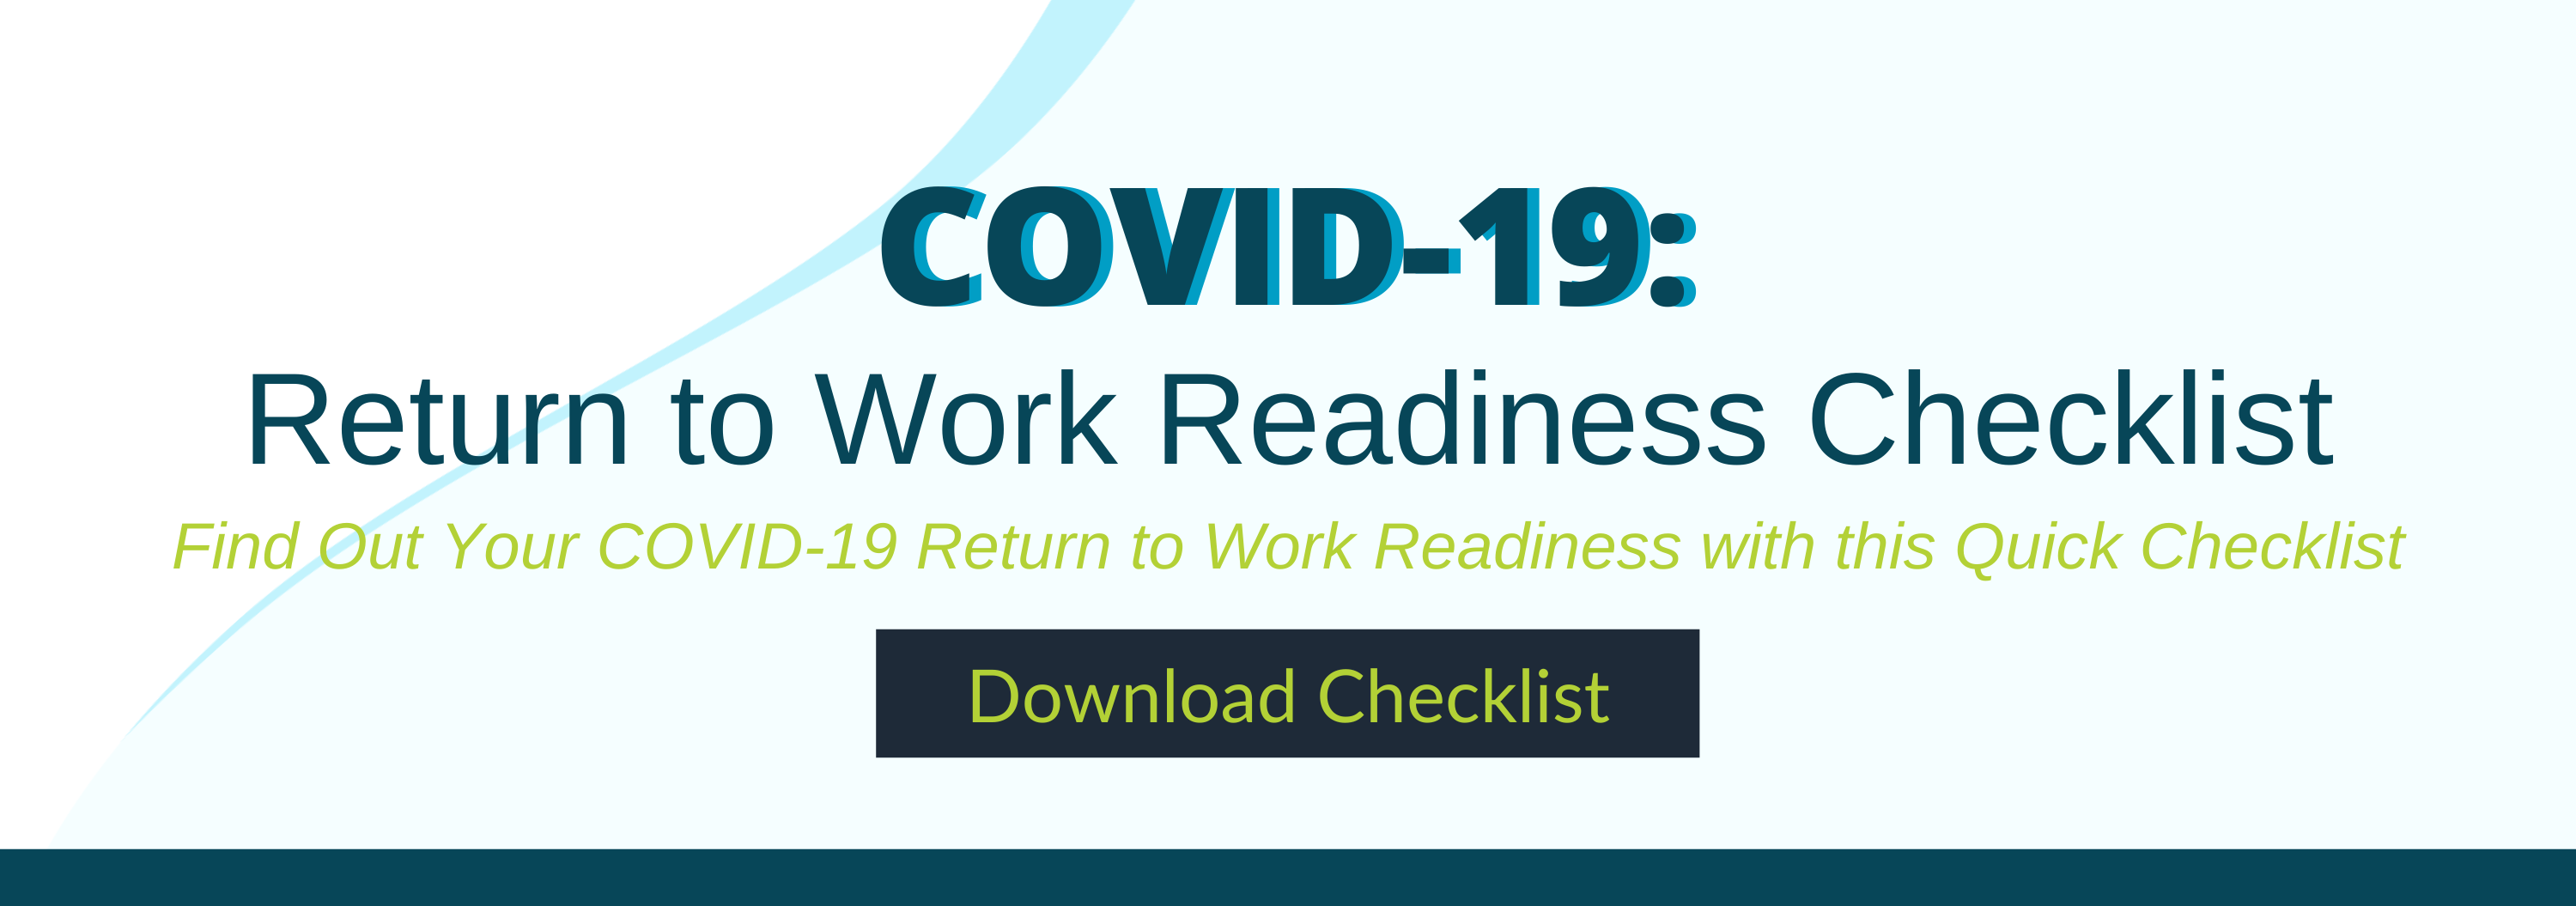 COVID-19 Return to Work Readiness Checklist